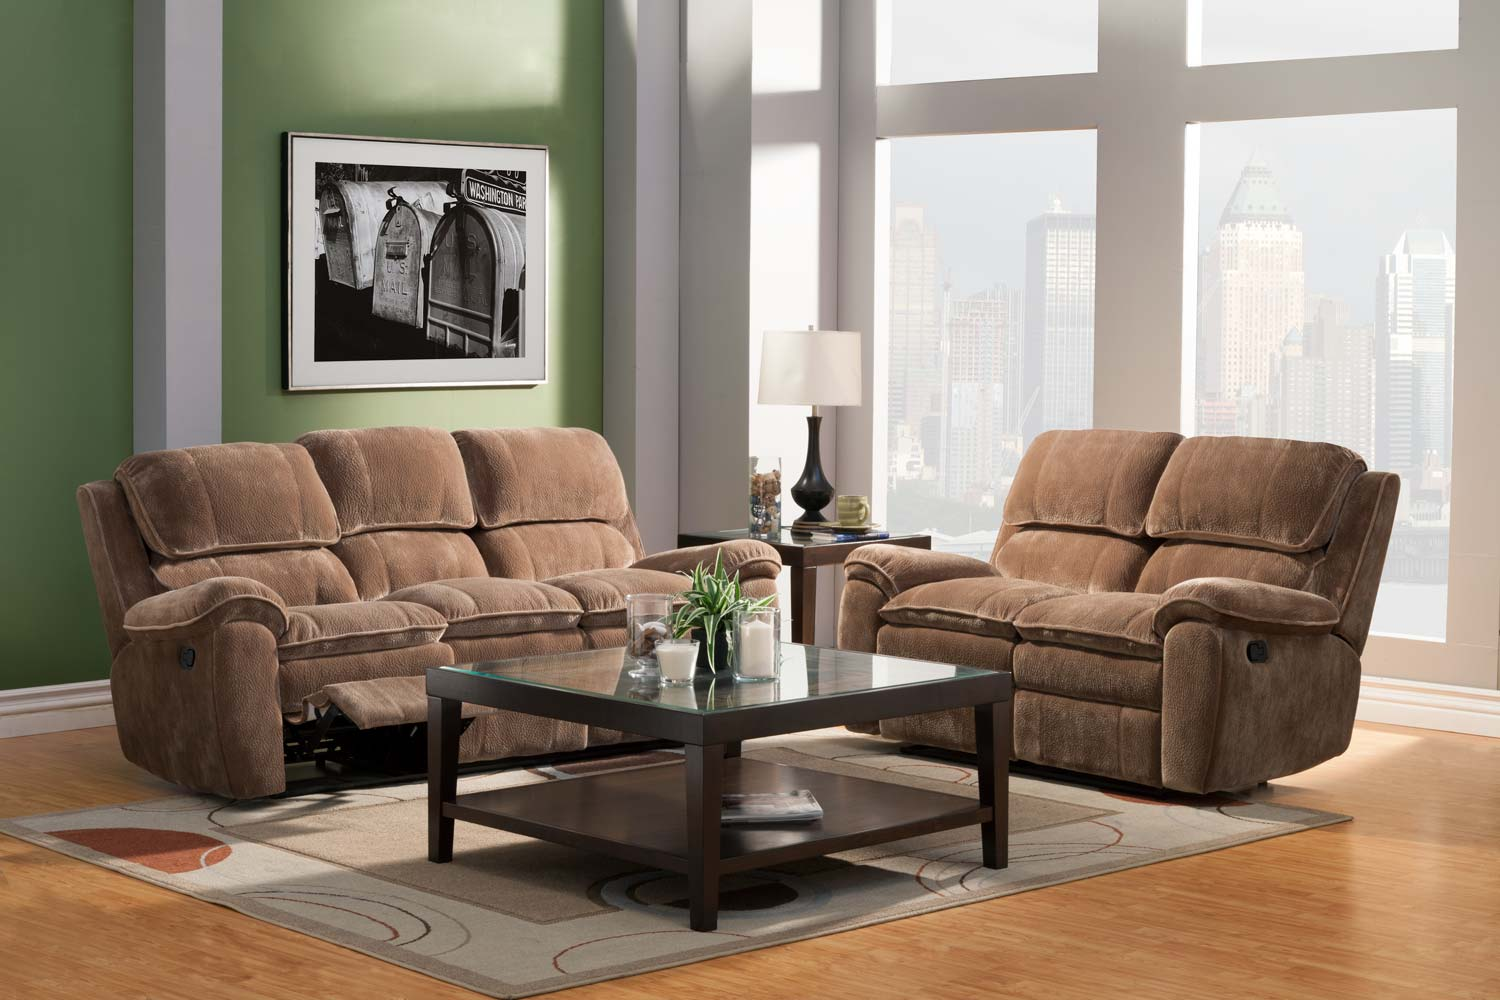 Homelegance Reilly Reclining Sofa Set - Brown - Textured Plush Microfiber